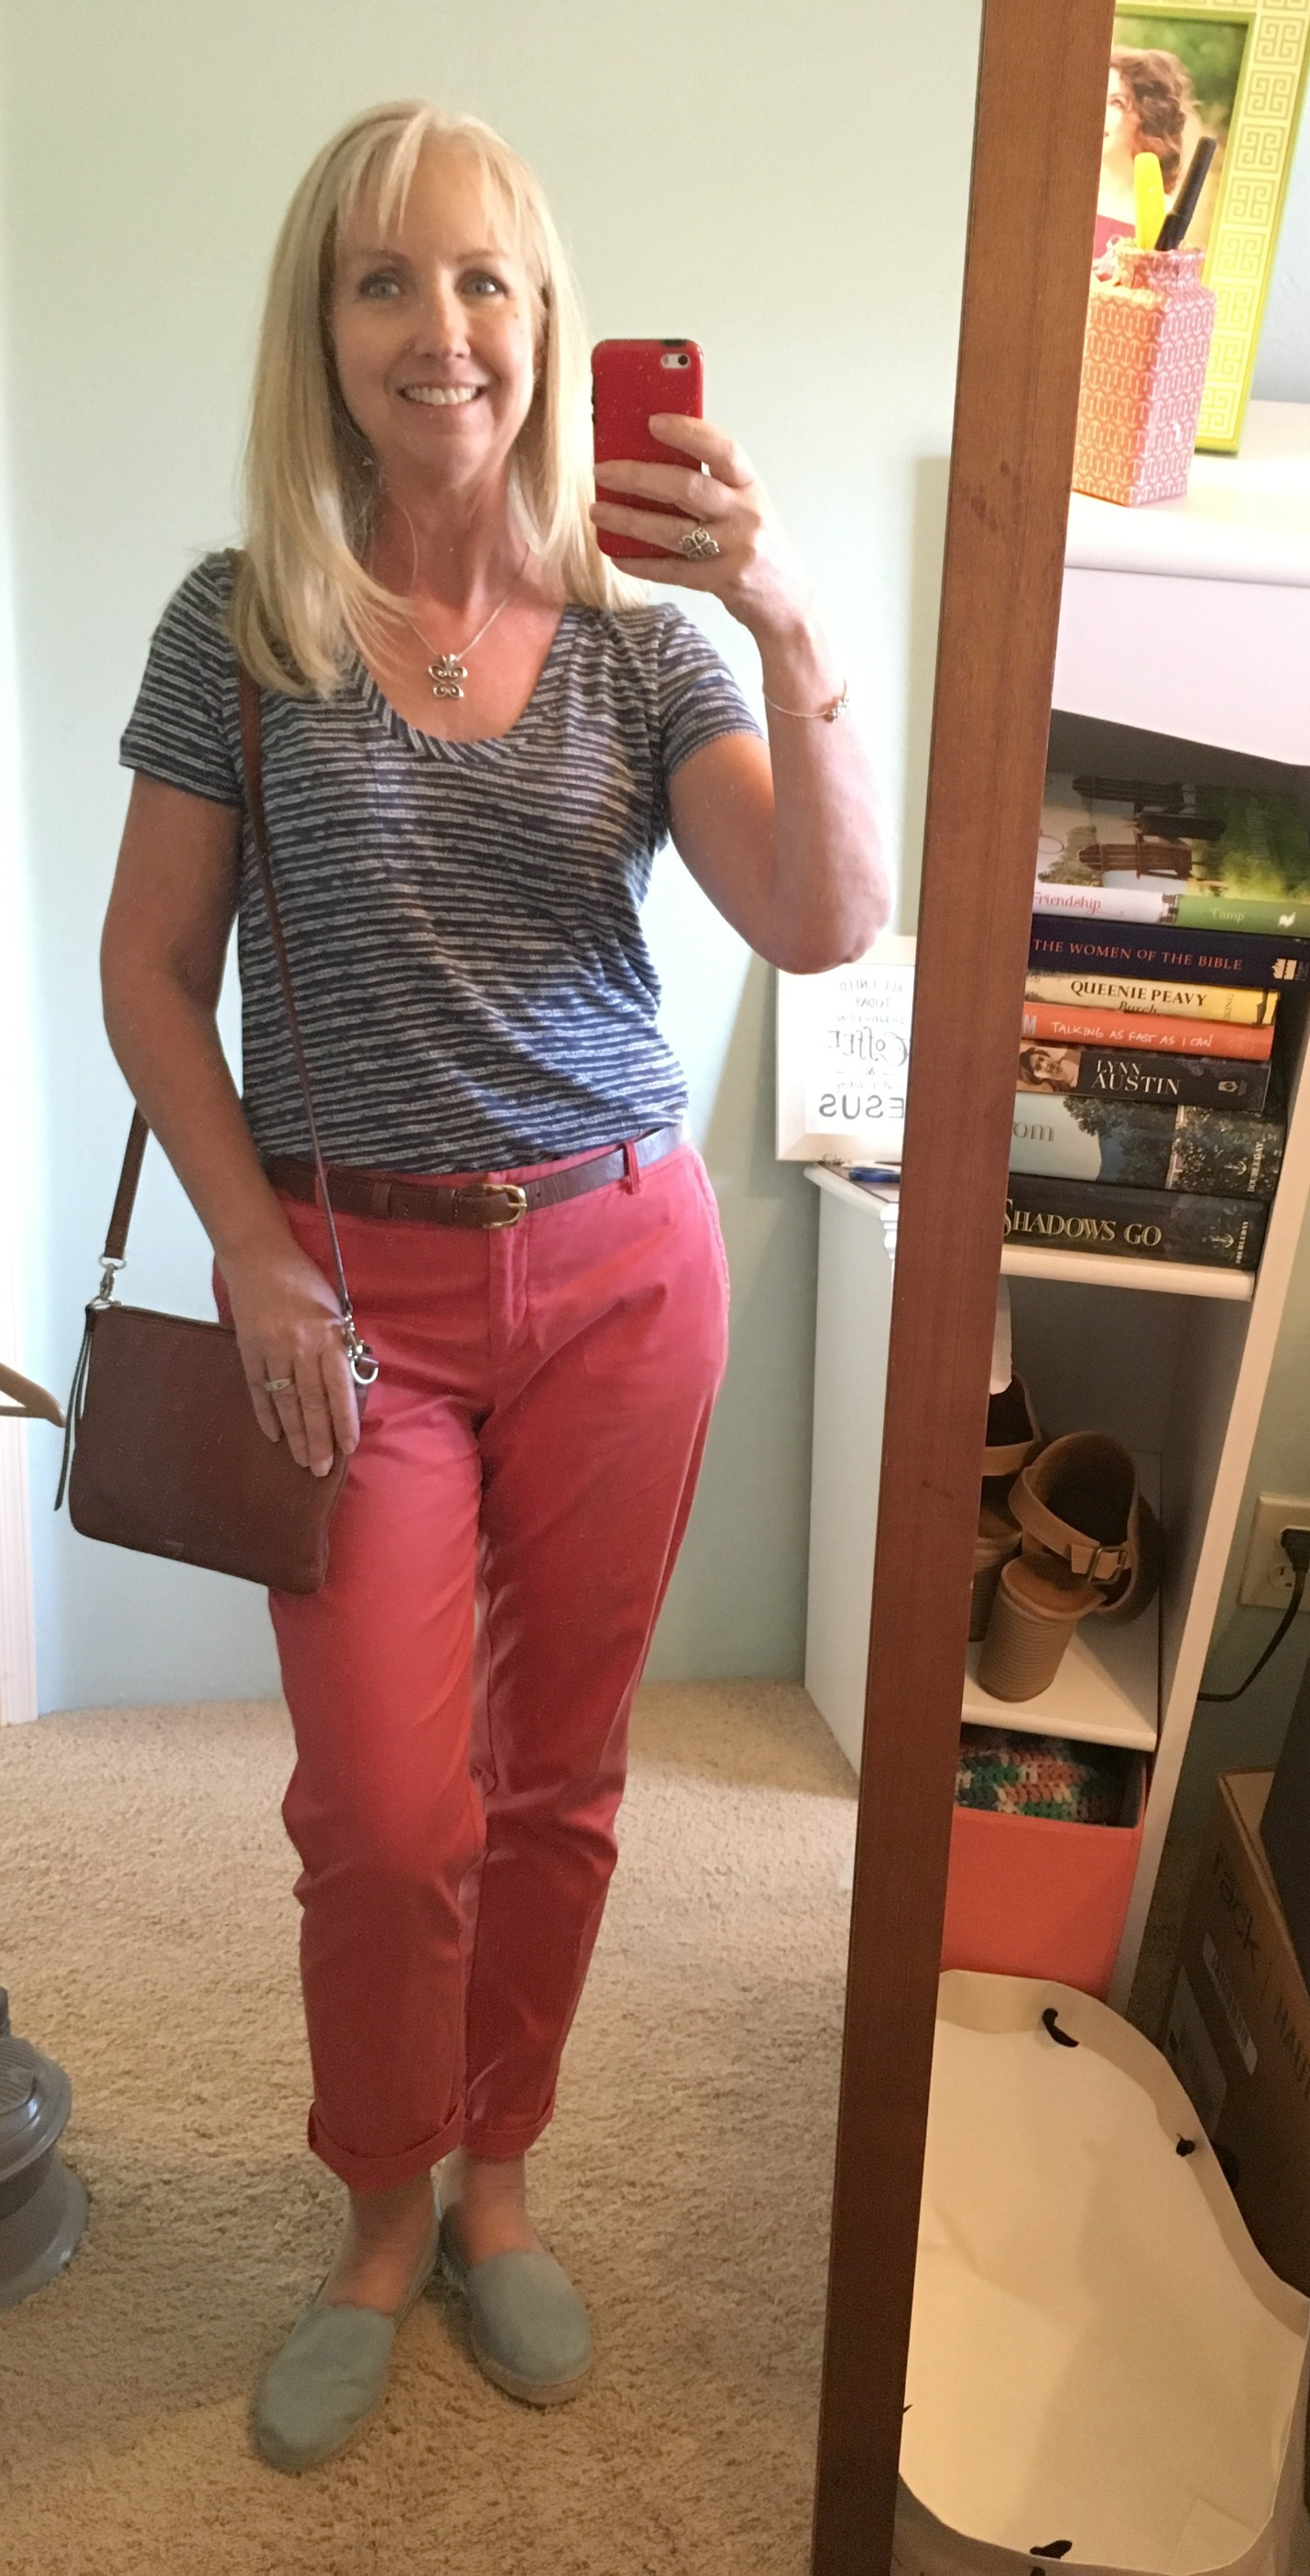 How I Really Dressed for My Day - 6/6 - 6/6 - Dressed for My Day